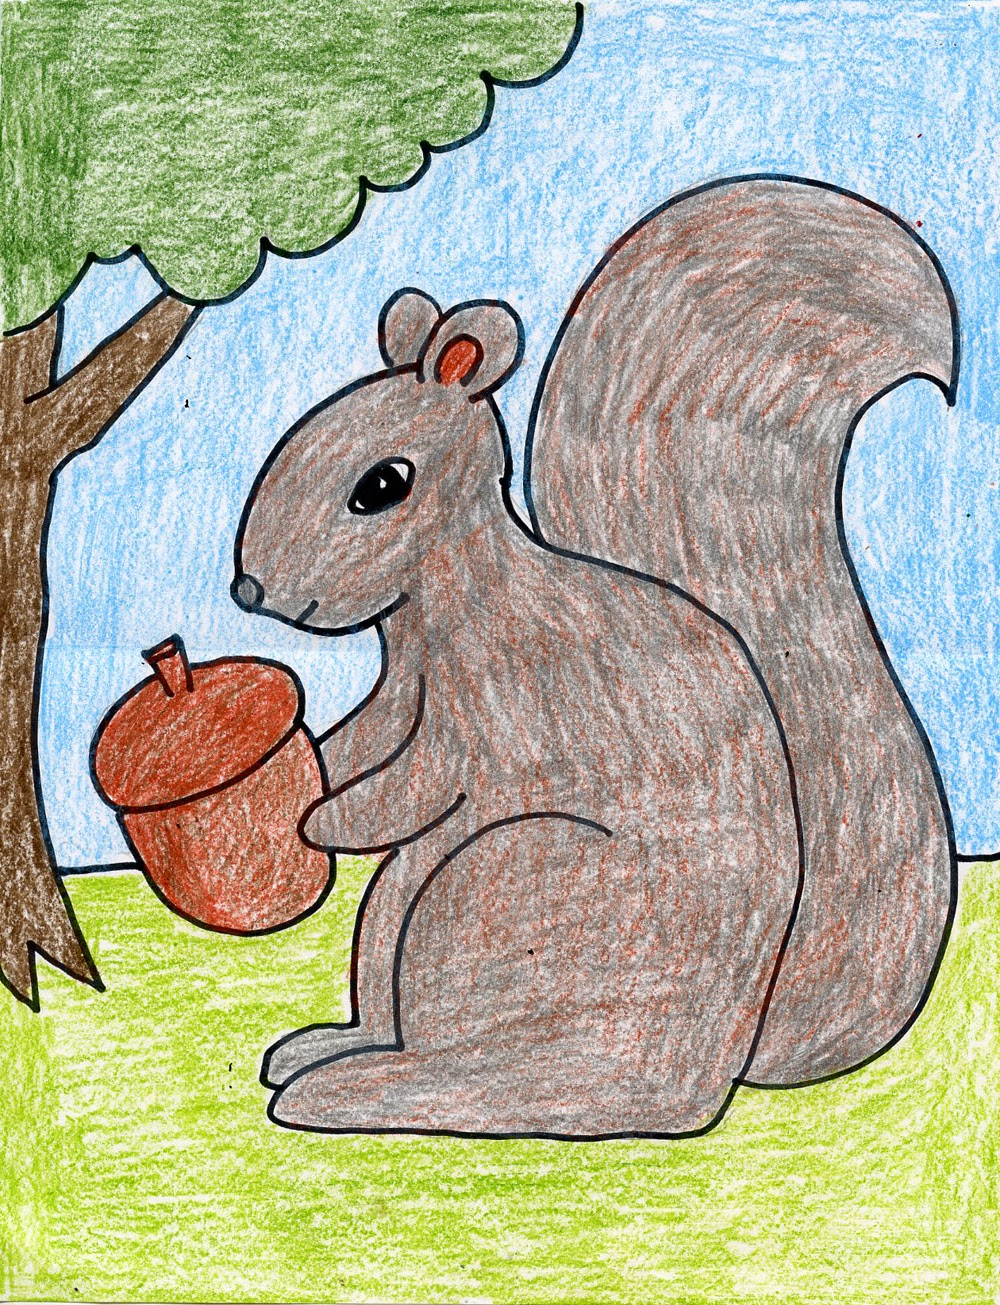 Draw a squirrel art projects for kids Simple drawing ideas for kids